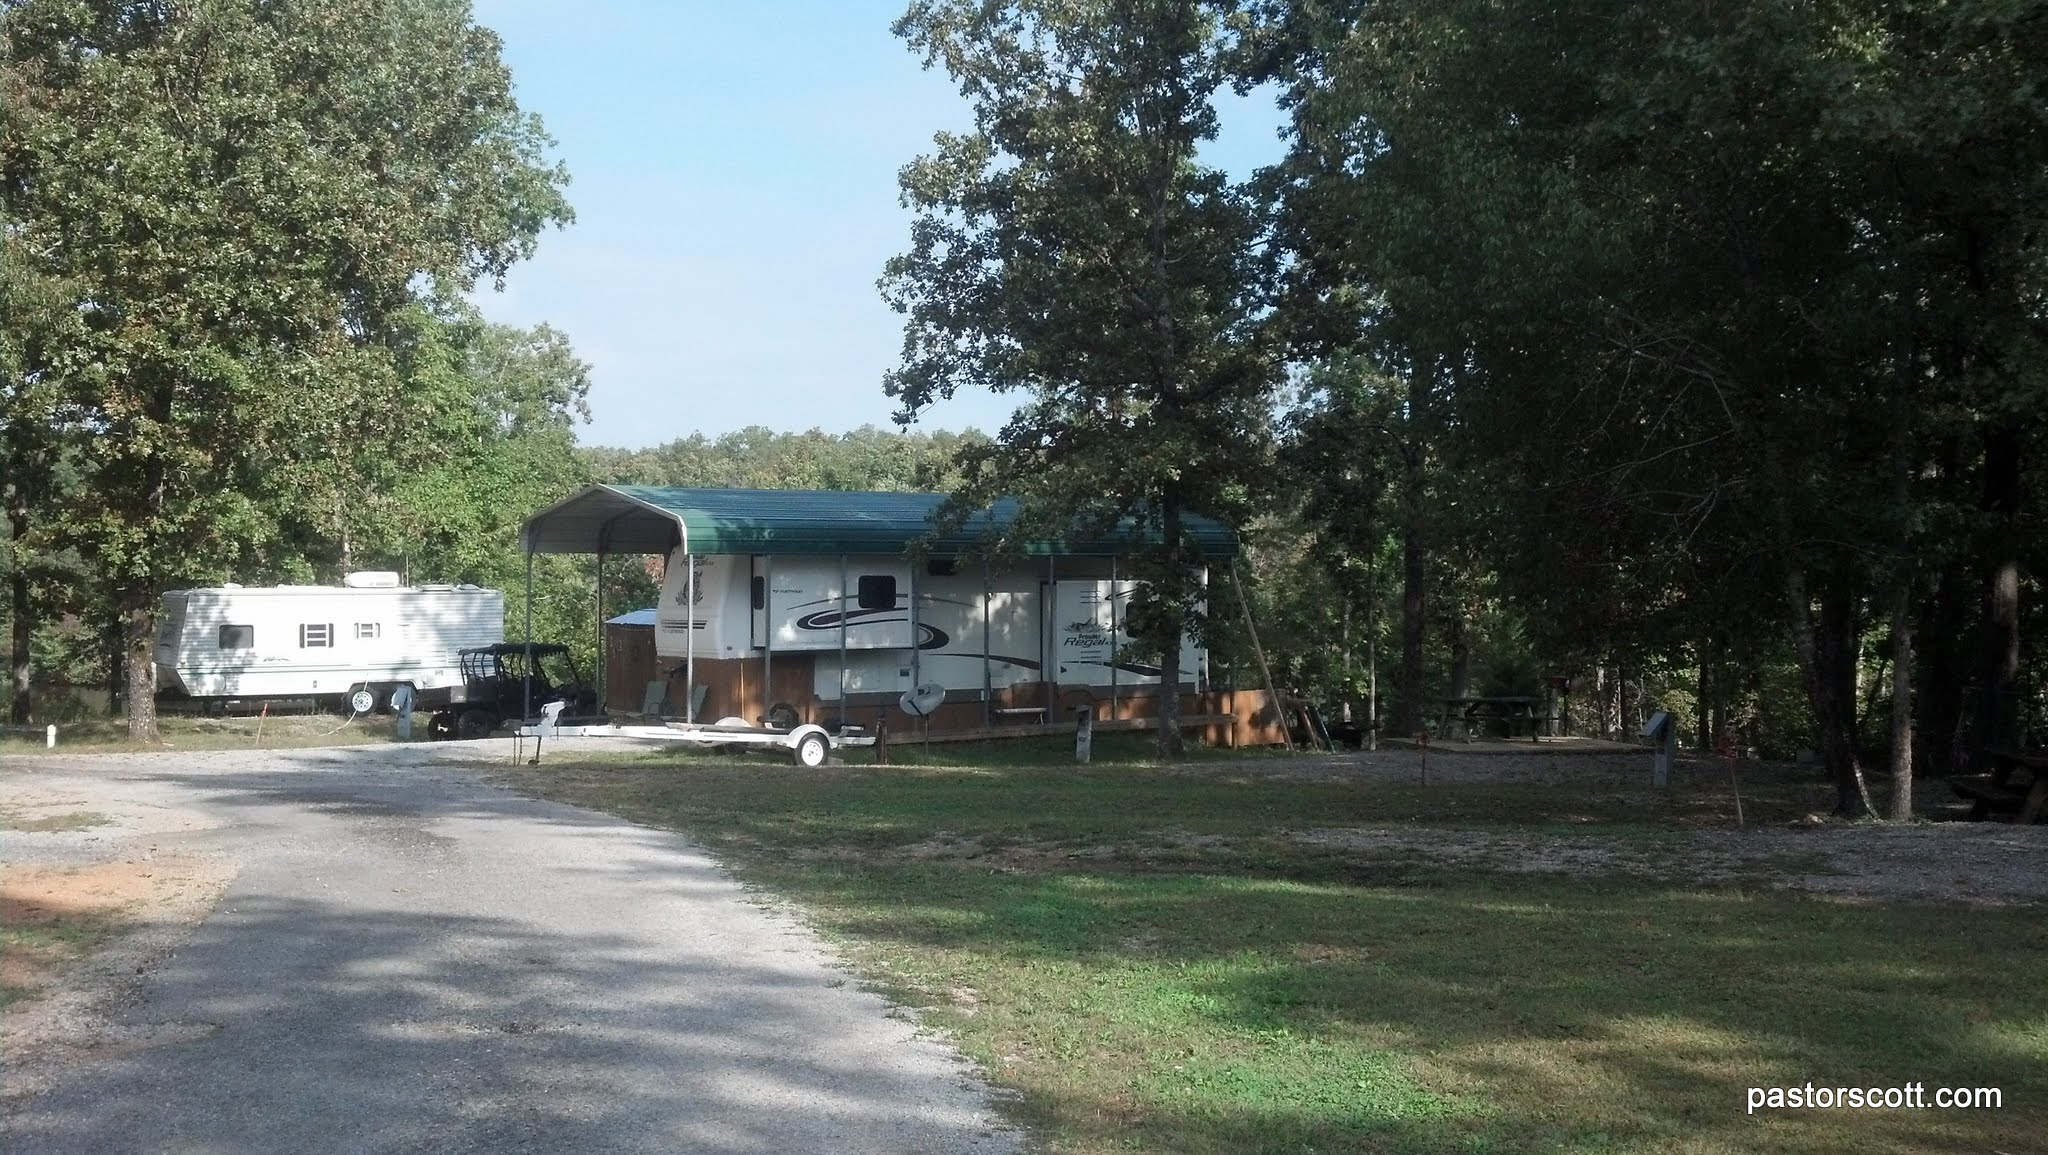 Car Lots In Tupelo Ms >> Campground Review: Natchez Trace Thousand Trails, Hohenwald, TN   Here and There